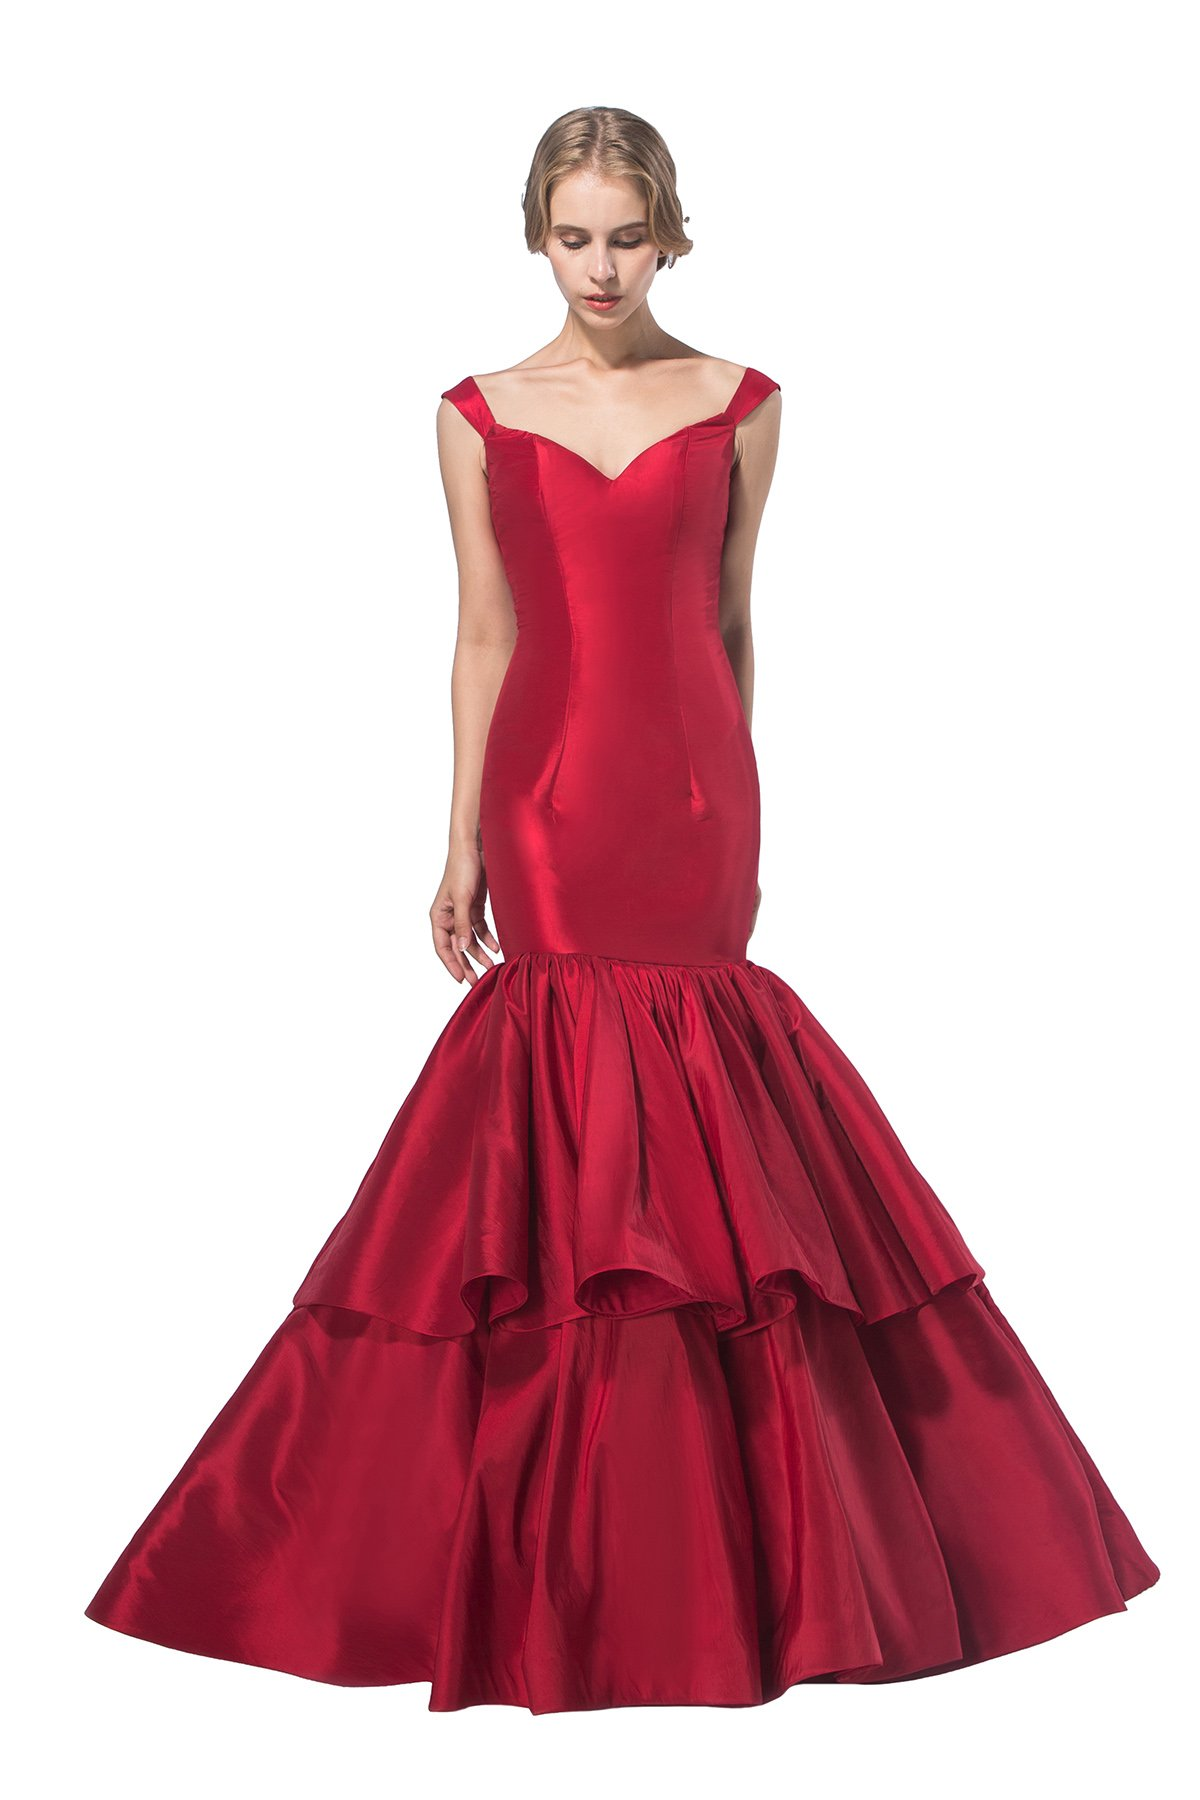 AISLE STYLE Modern Off Shoulder Mermaid Long Ruffled Evening Dress